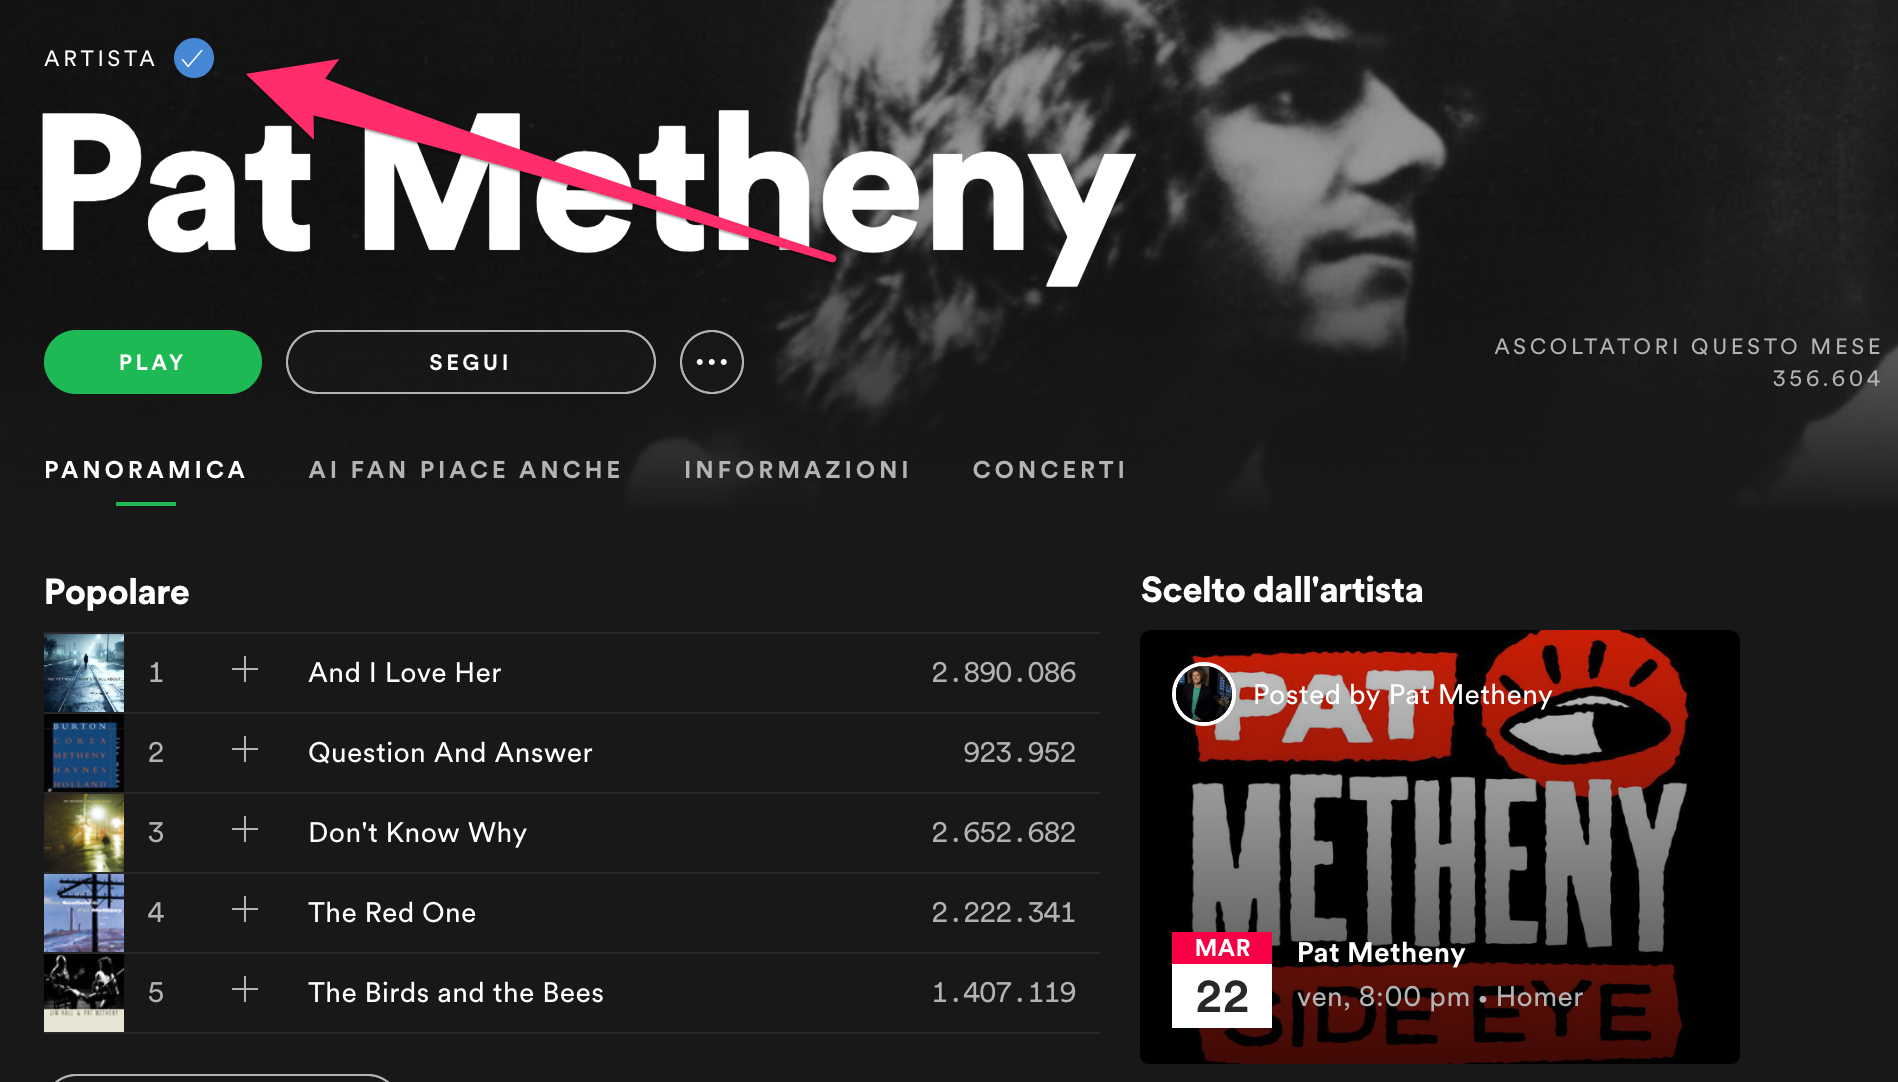 Come Promuovere Musica Su Spotify - Spotify for Artists - Pat